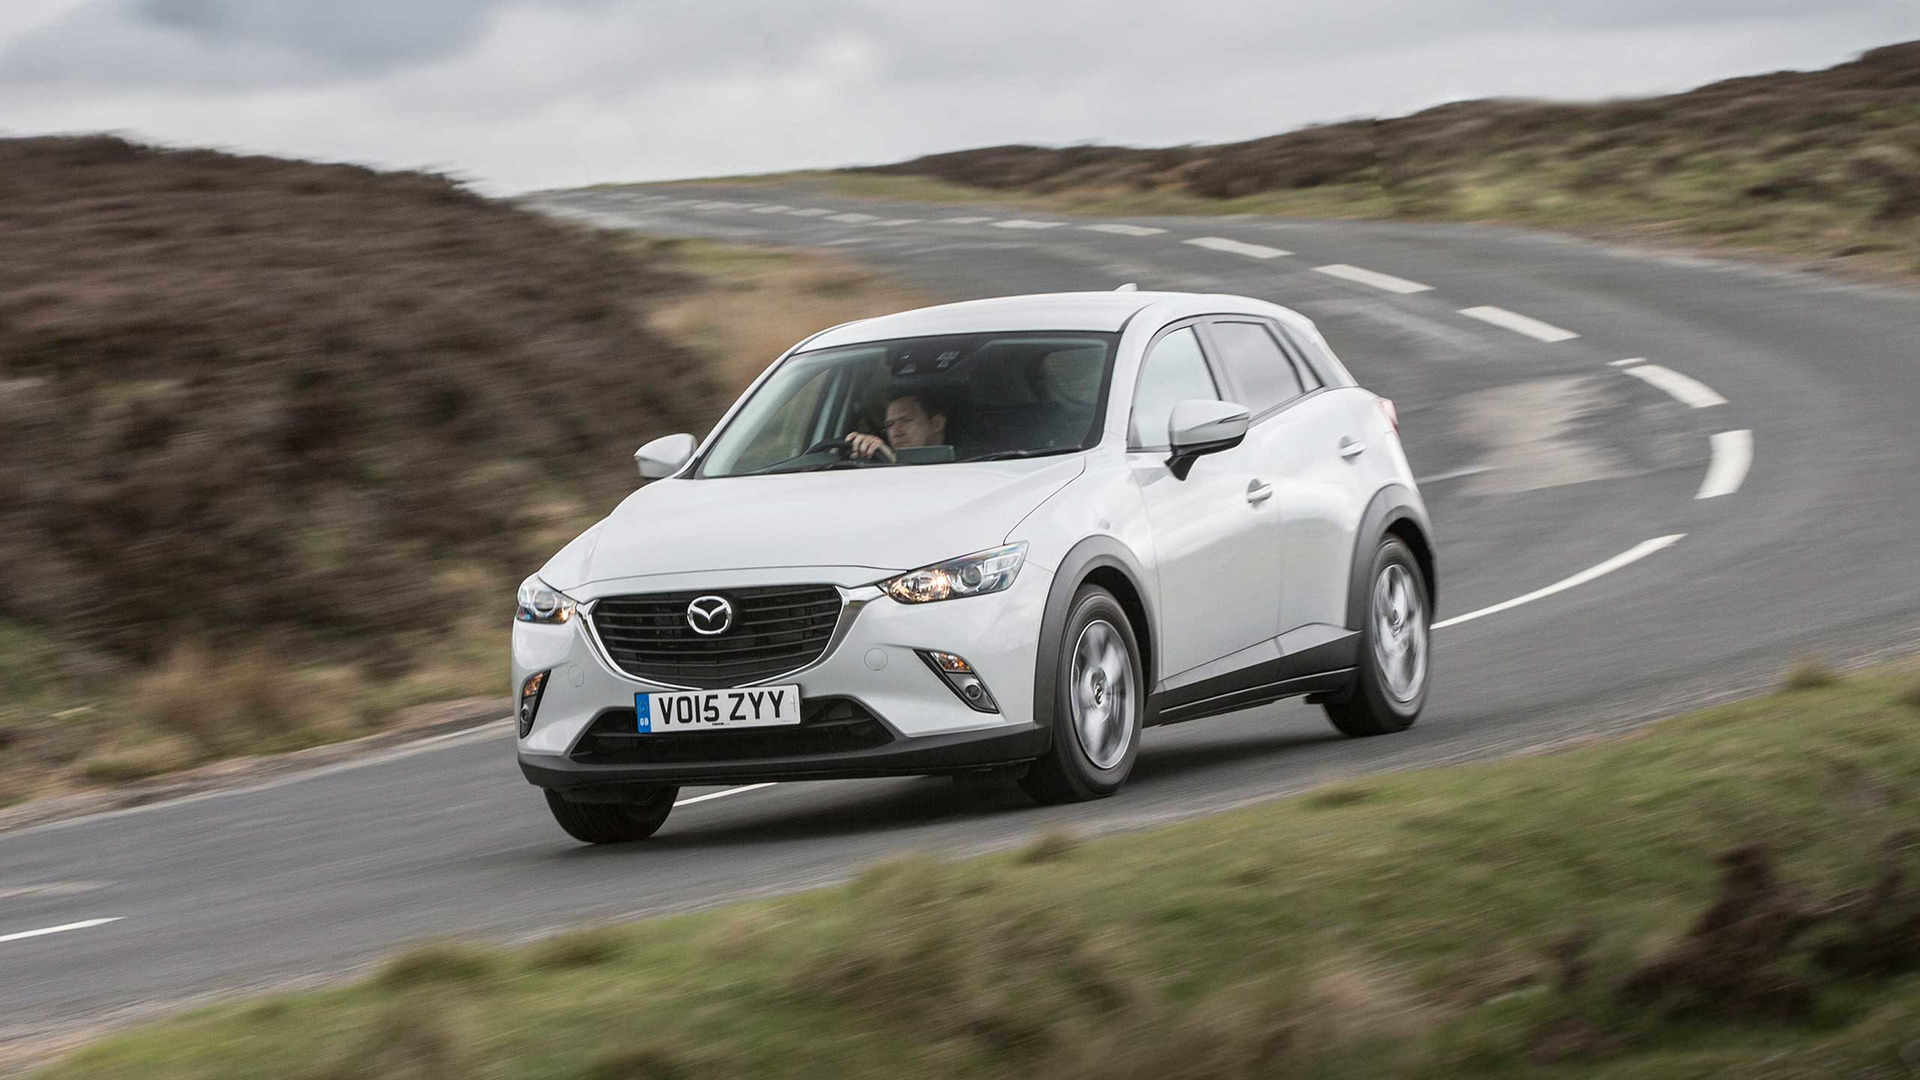 mazda review ireland driver index s edition front cx car new